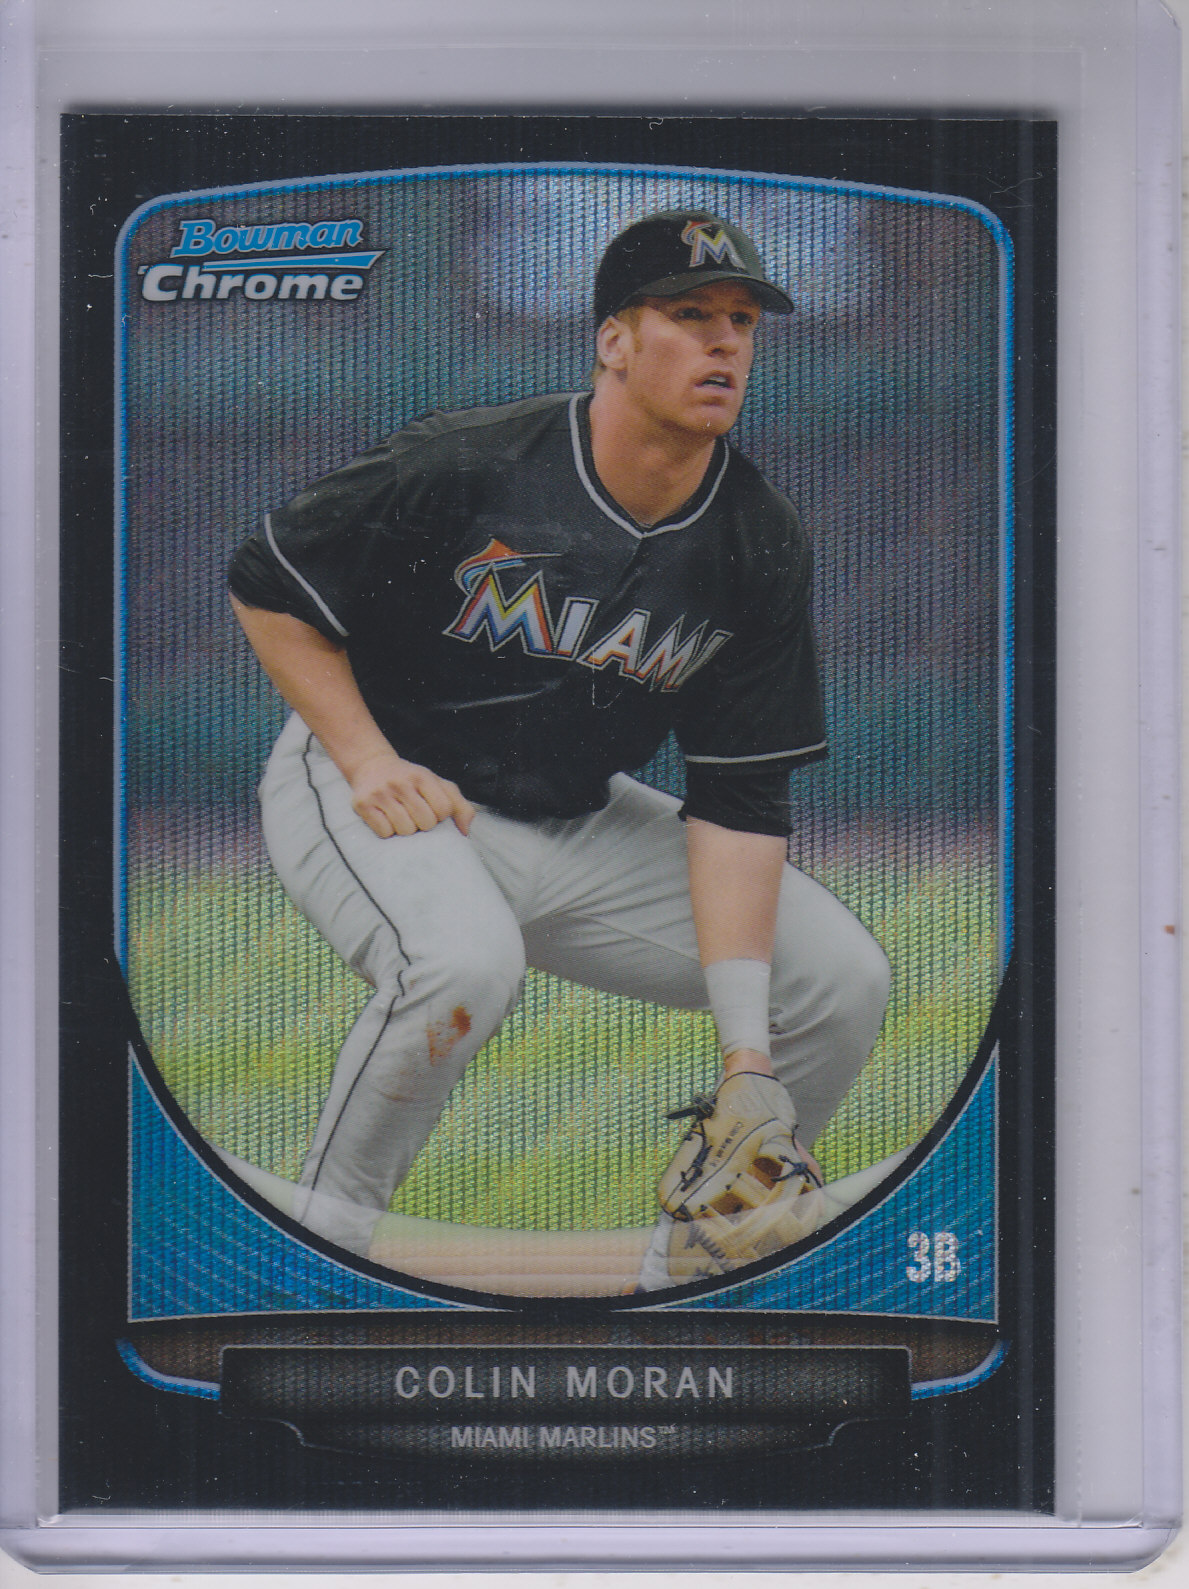 2013 Bowman Chrome Draft Draft Picks Black Wave Refractors #BDPP20 Colin Moran